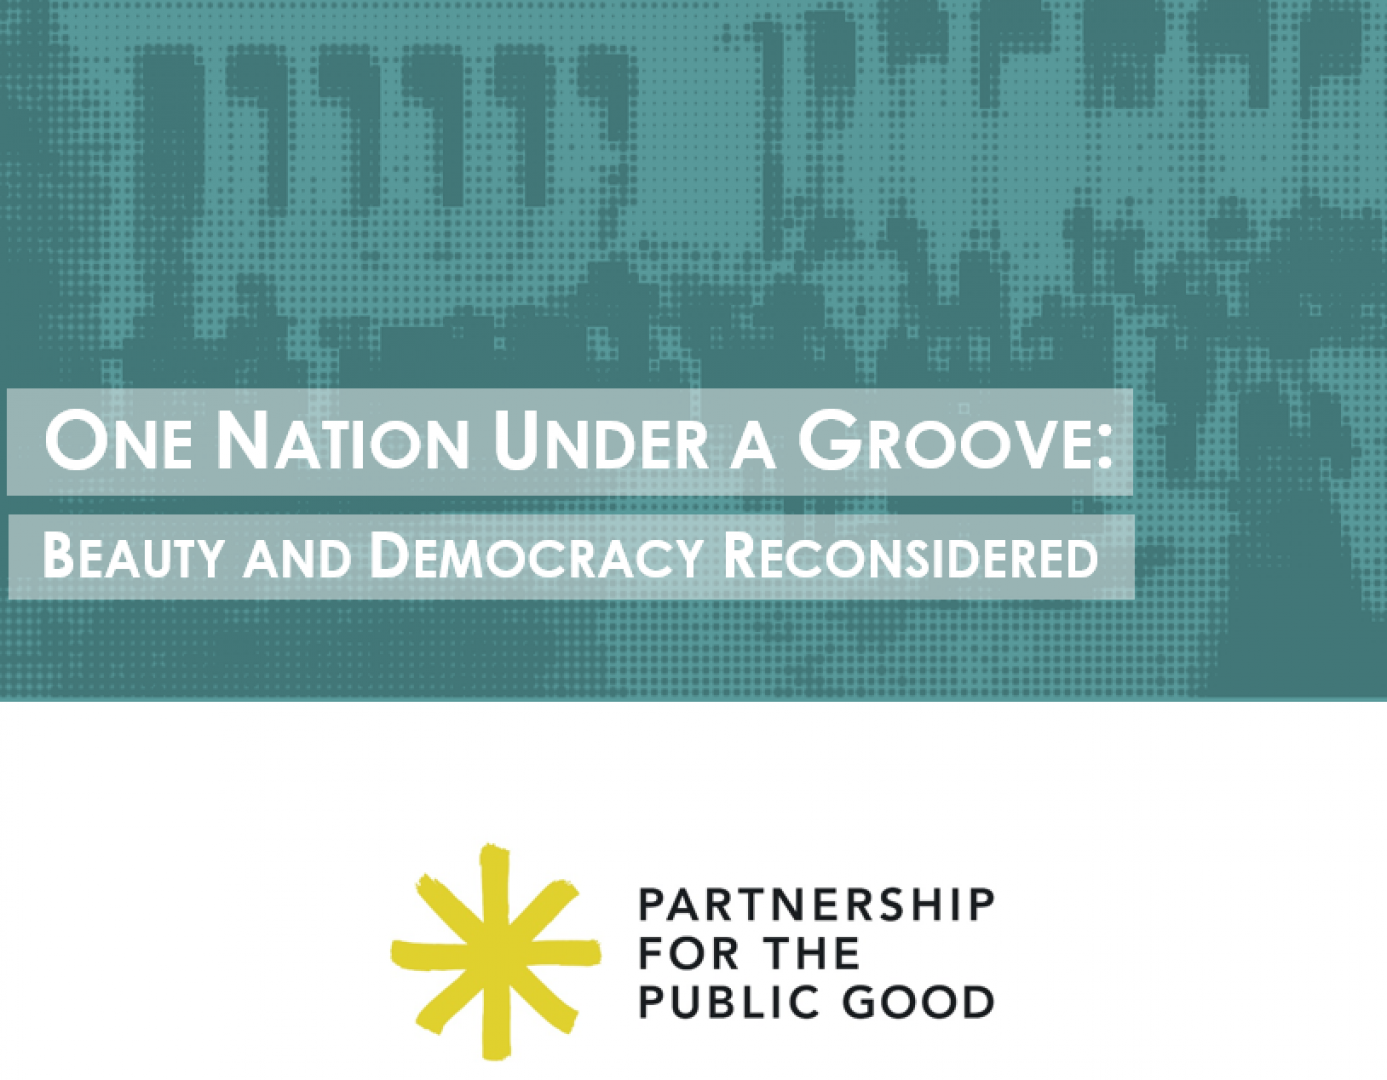 One Nation Under a Groove: Beauty and Democracy Reconsidered